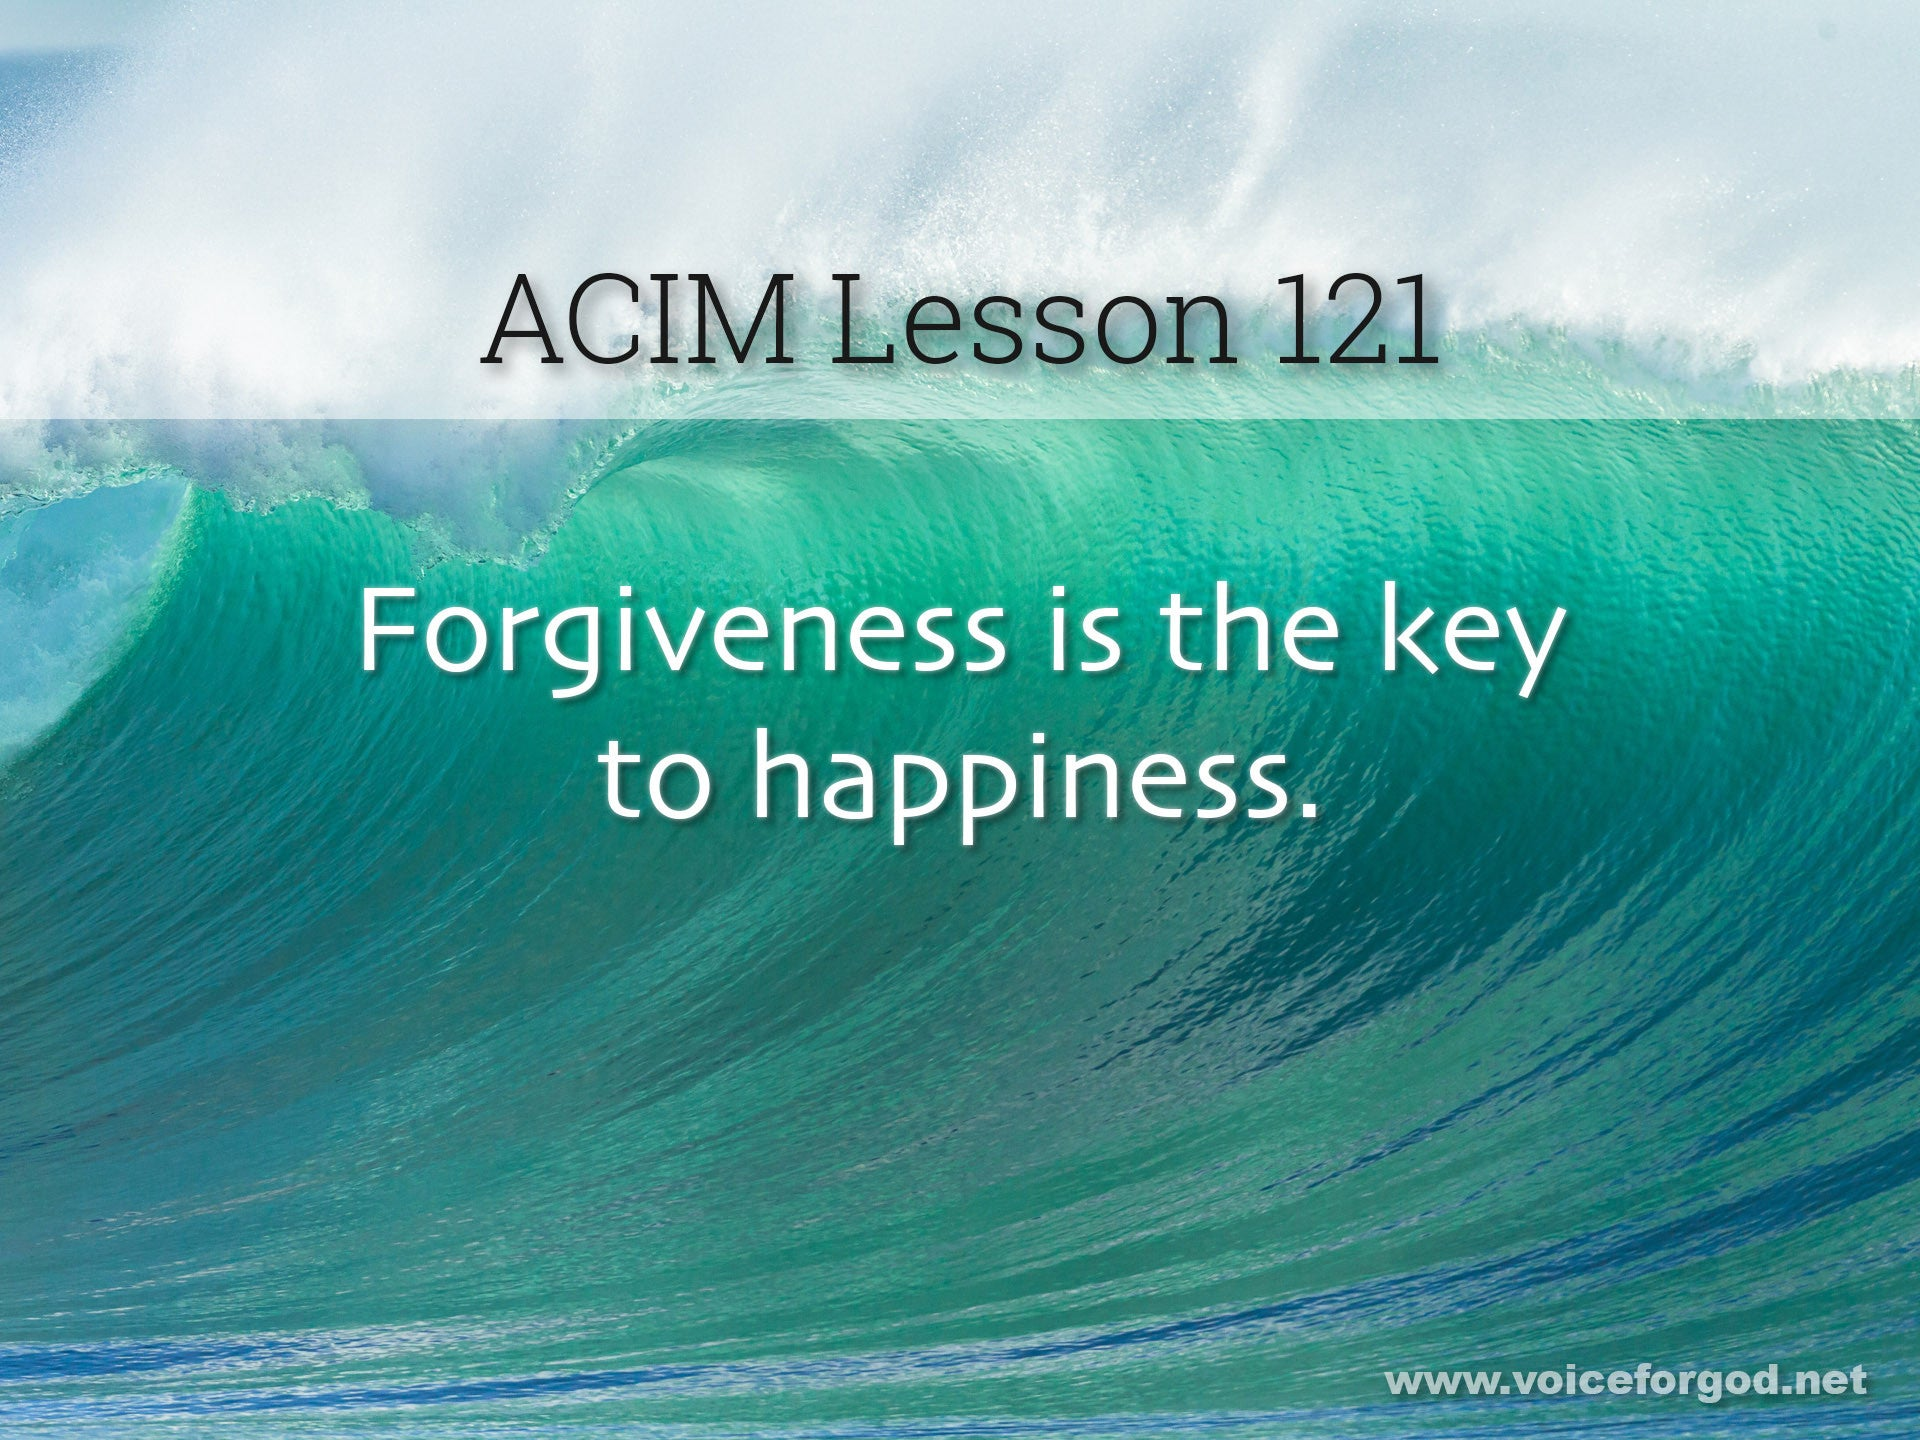 ACIM Lesson 121 - A Course in Miracles Workbook Lesson 121